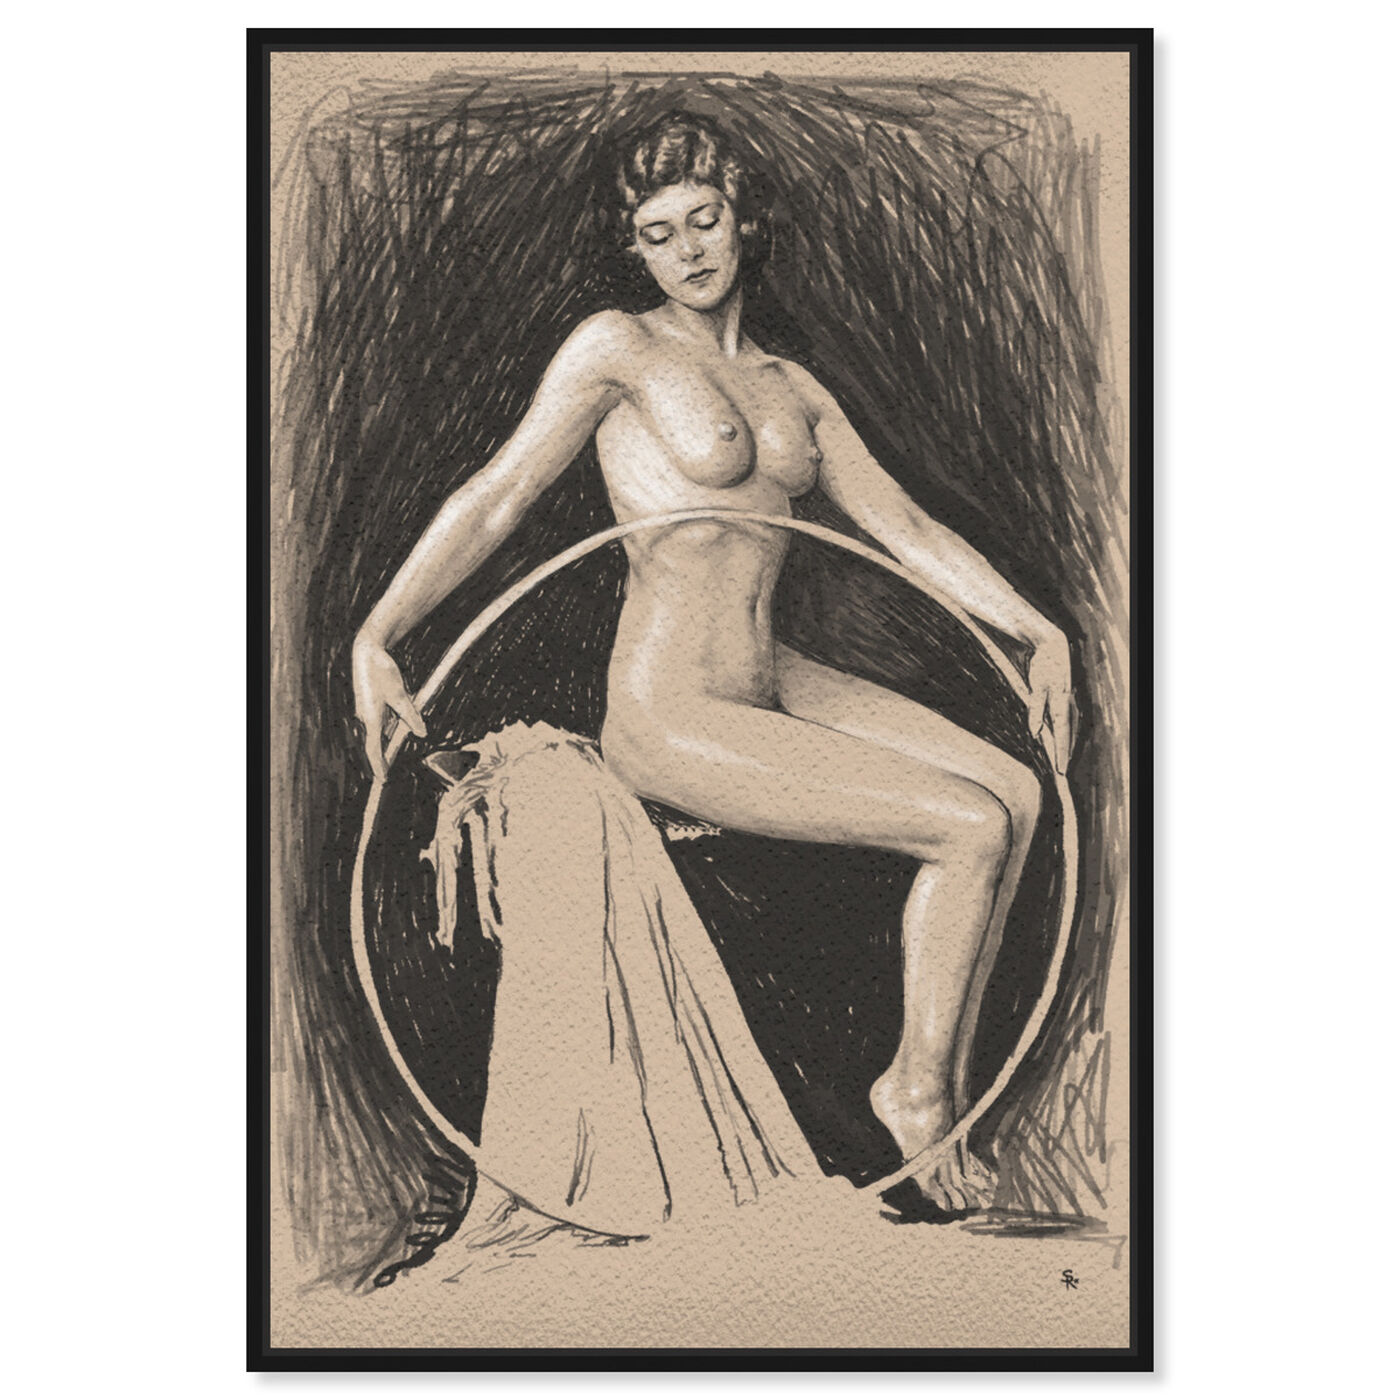 Front view of Nude Woman with Hoop featuring classic and figurative and nudes art.